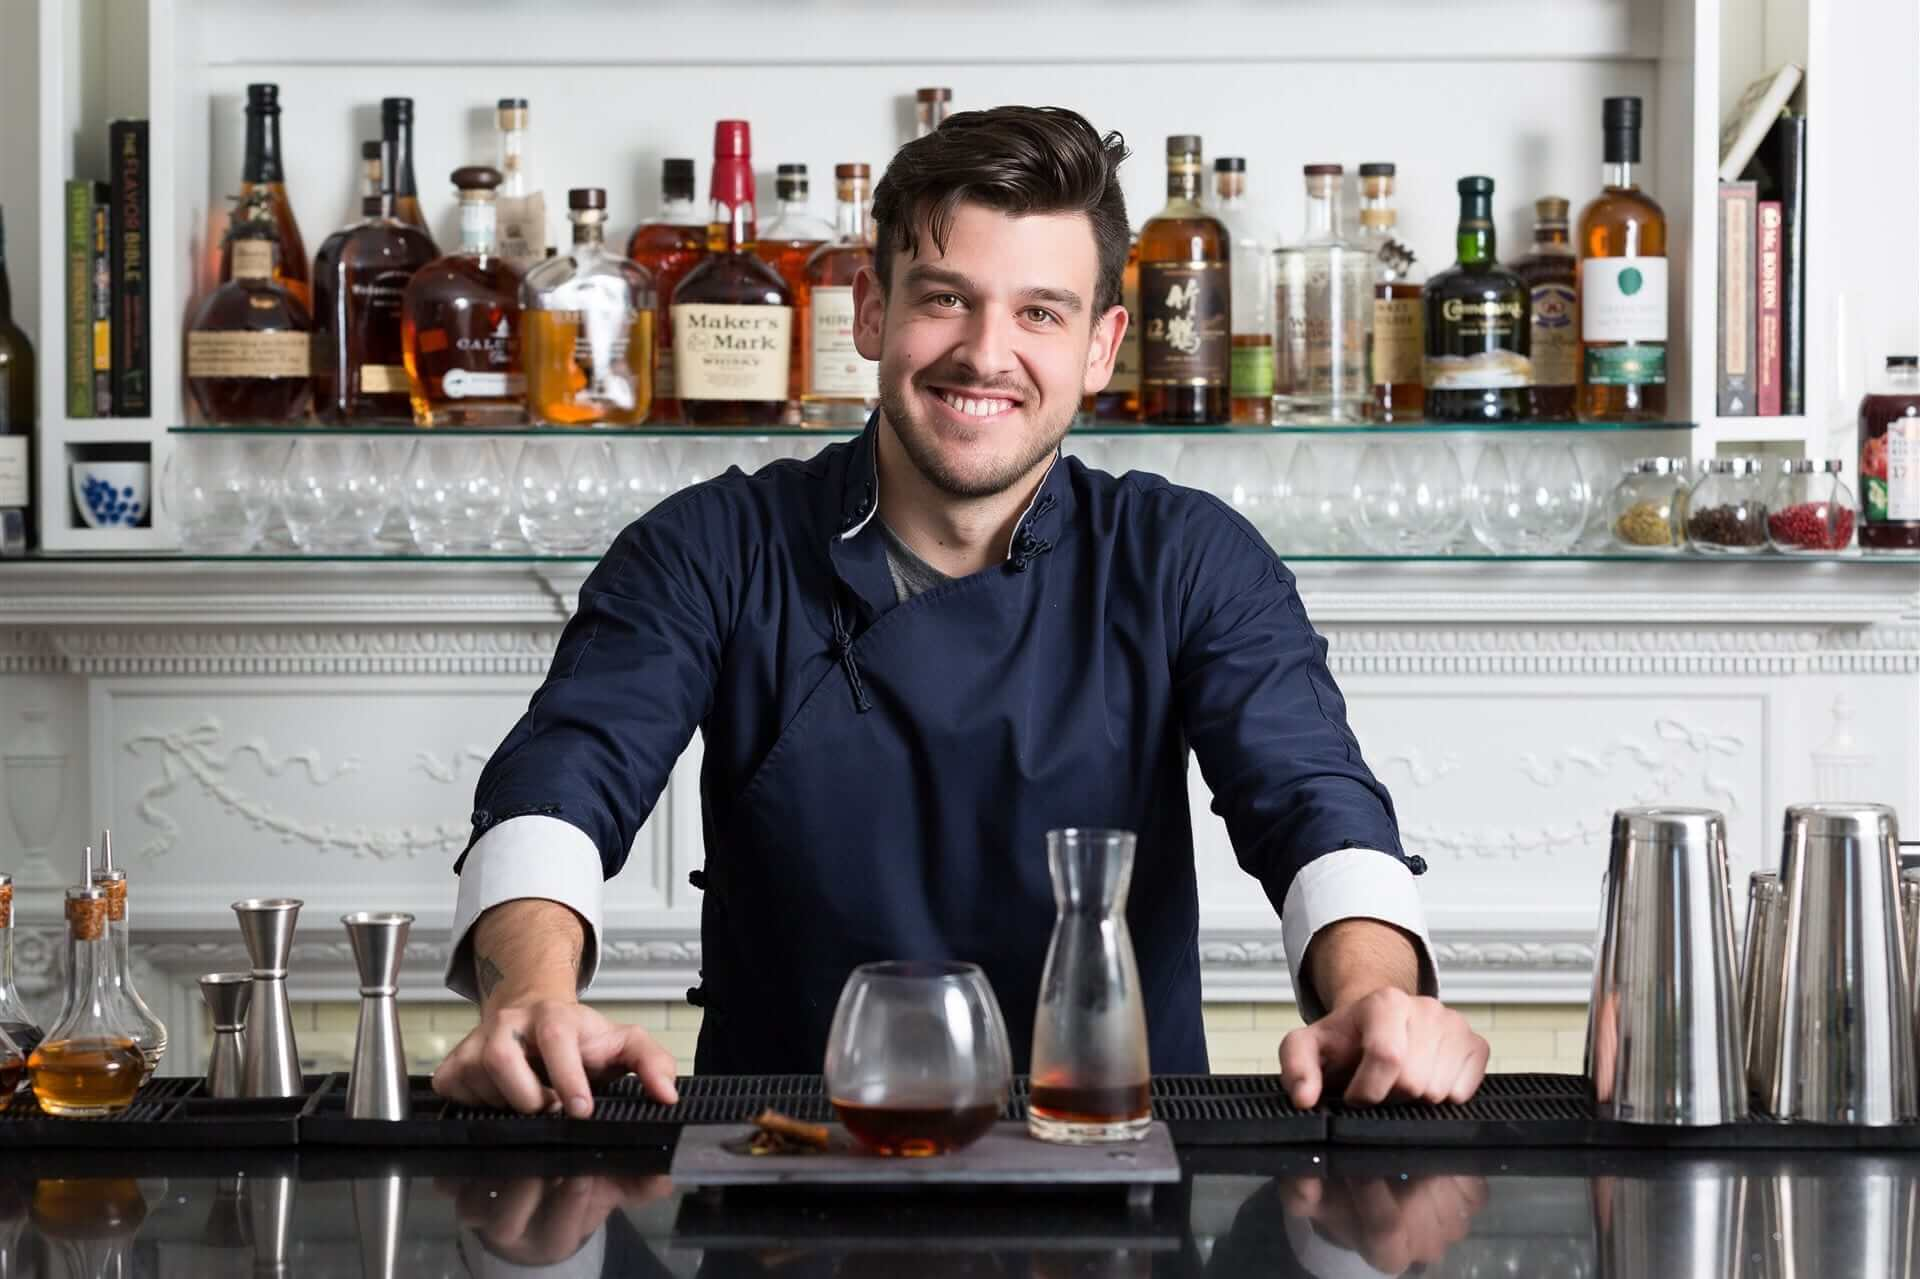 Photo of a Happy Mixologist at Natalie's Restaurant, One of the Best Bars in Camden Maine.